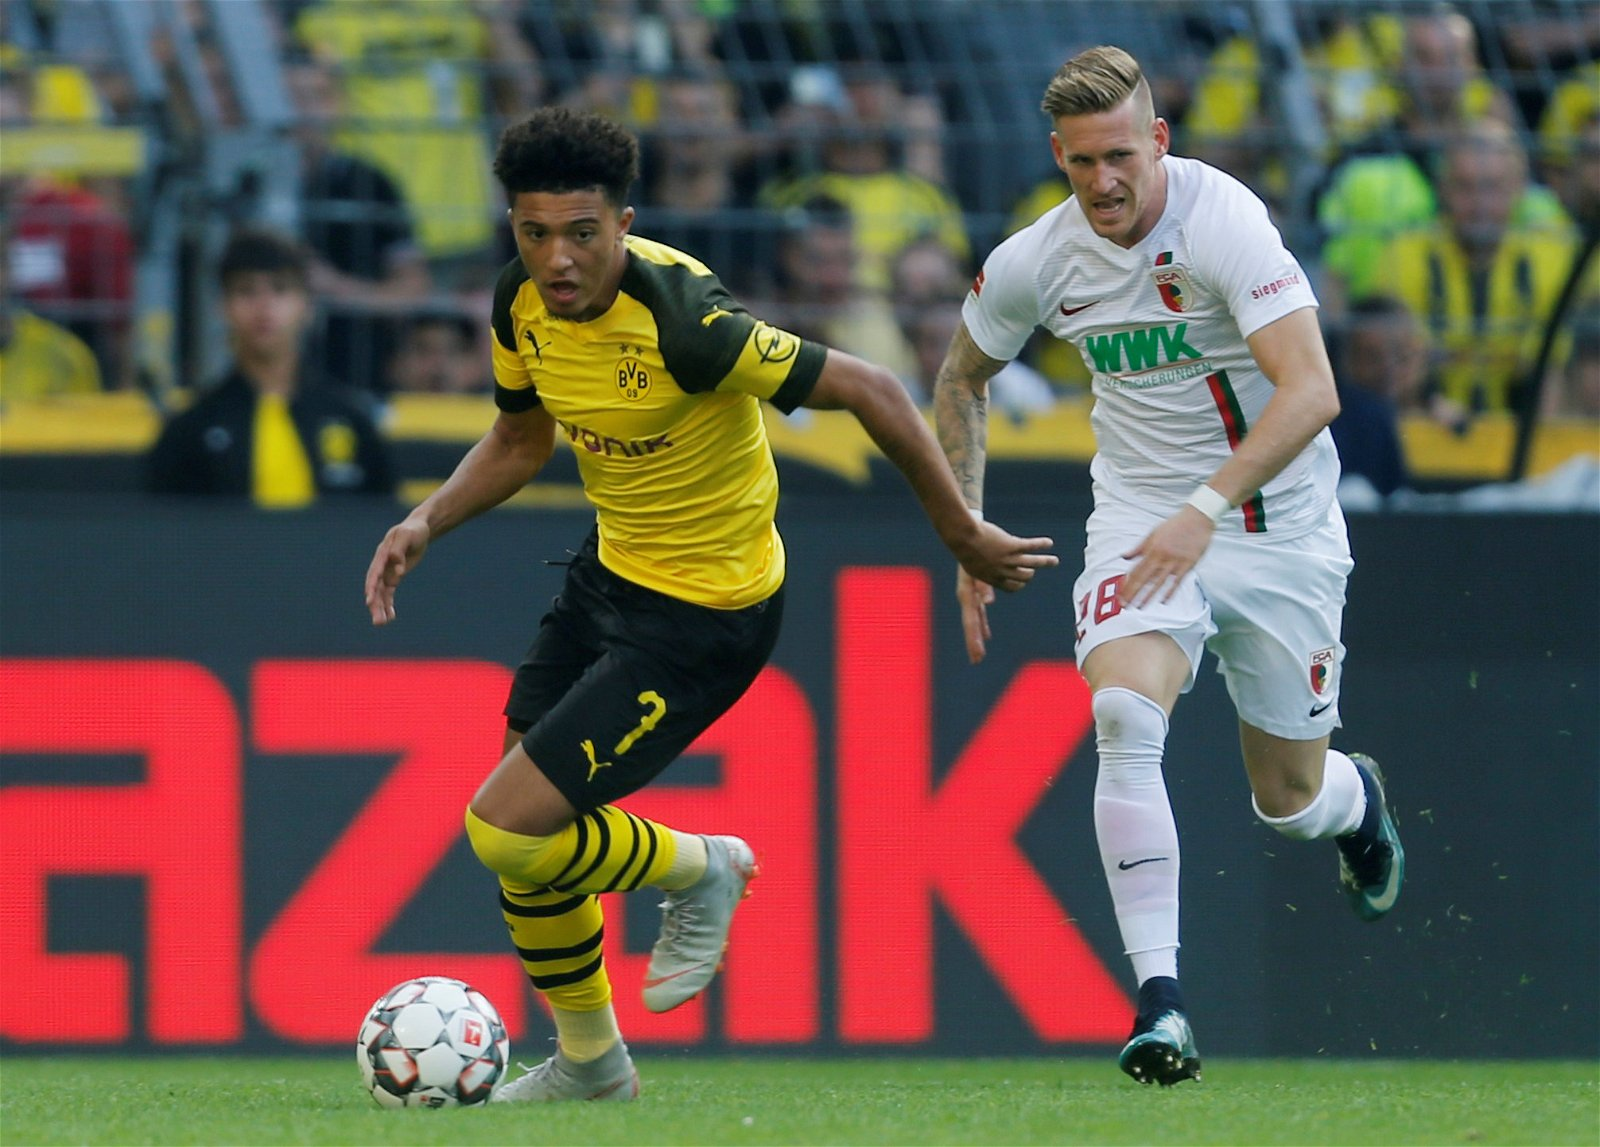 Jadon Sancho runs with the ball for Borussia Dortmund against Augsburg